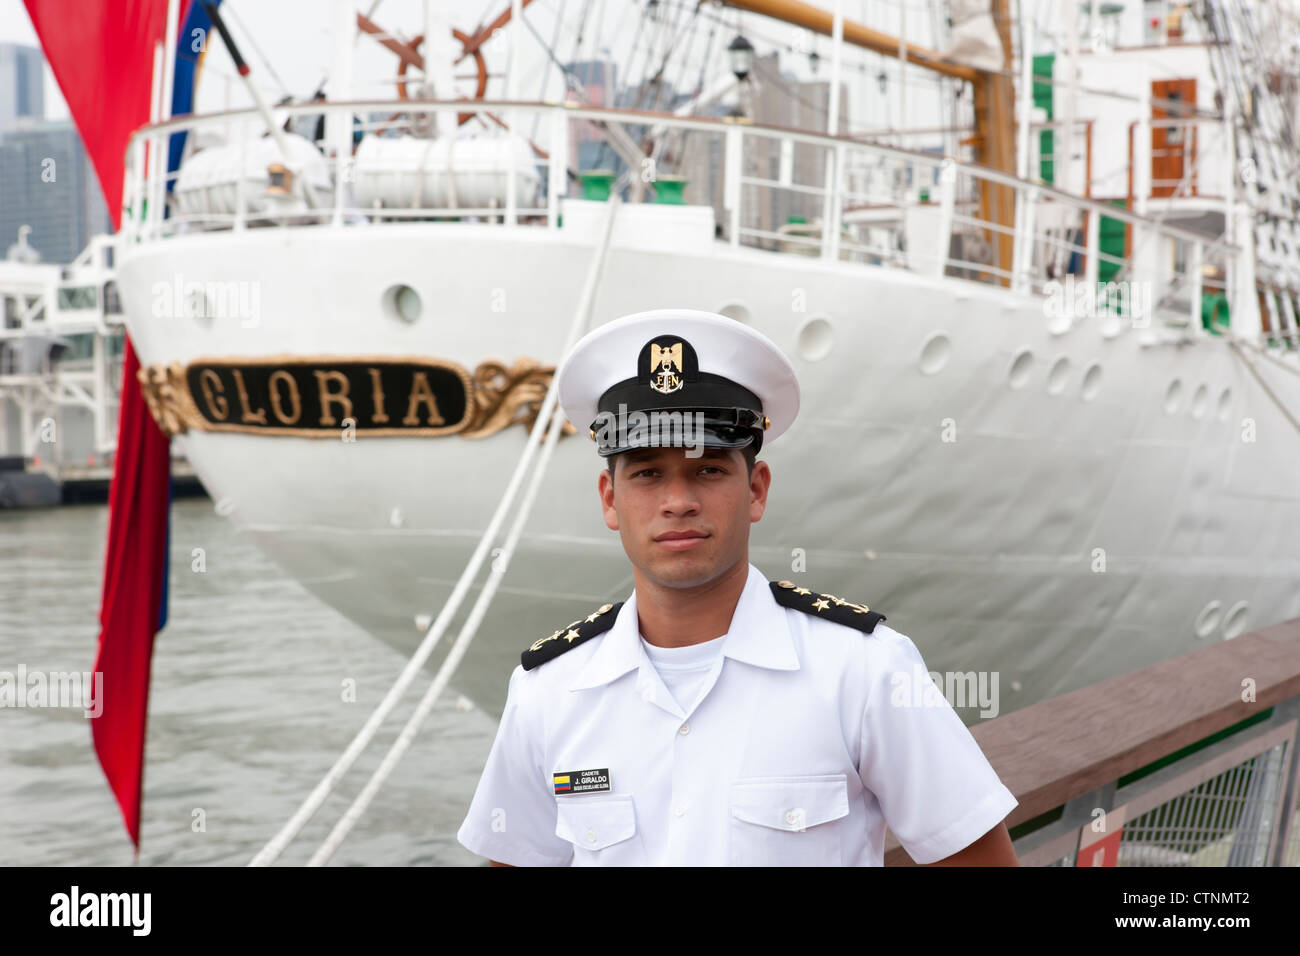 A cadette poses next to the Colombia training ship ARC Gloria during 2012 Fleet Week in New York City - Stock Image